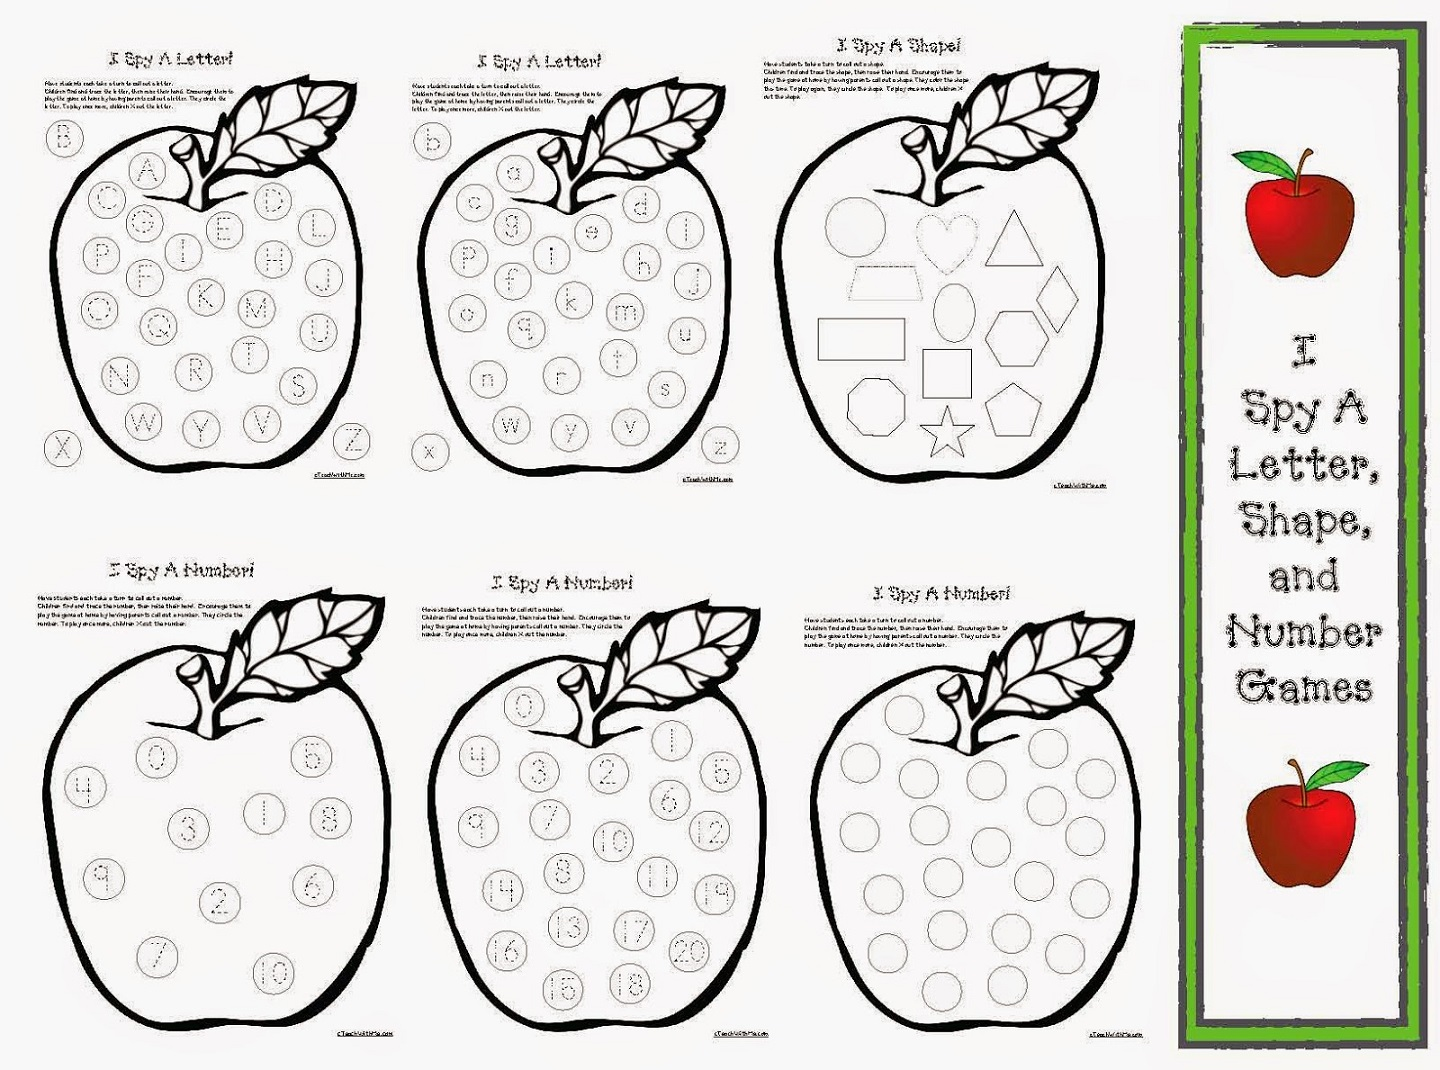 Shapes and Numbers Worksheets games